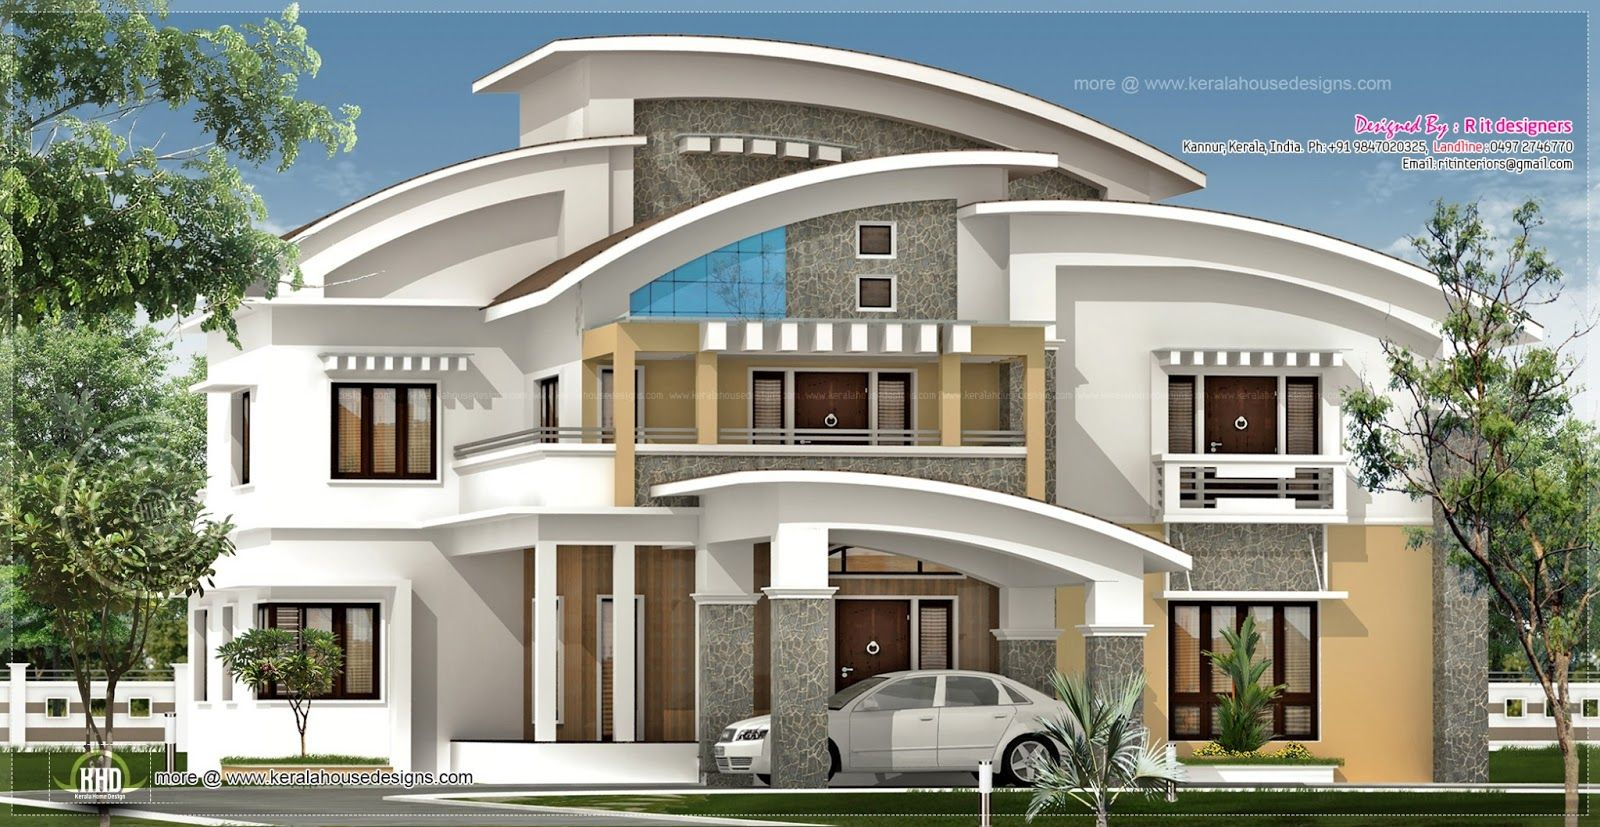 Luxury Home Exterior Designs 3750 square feet